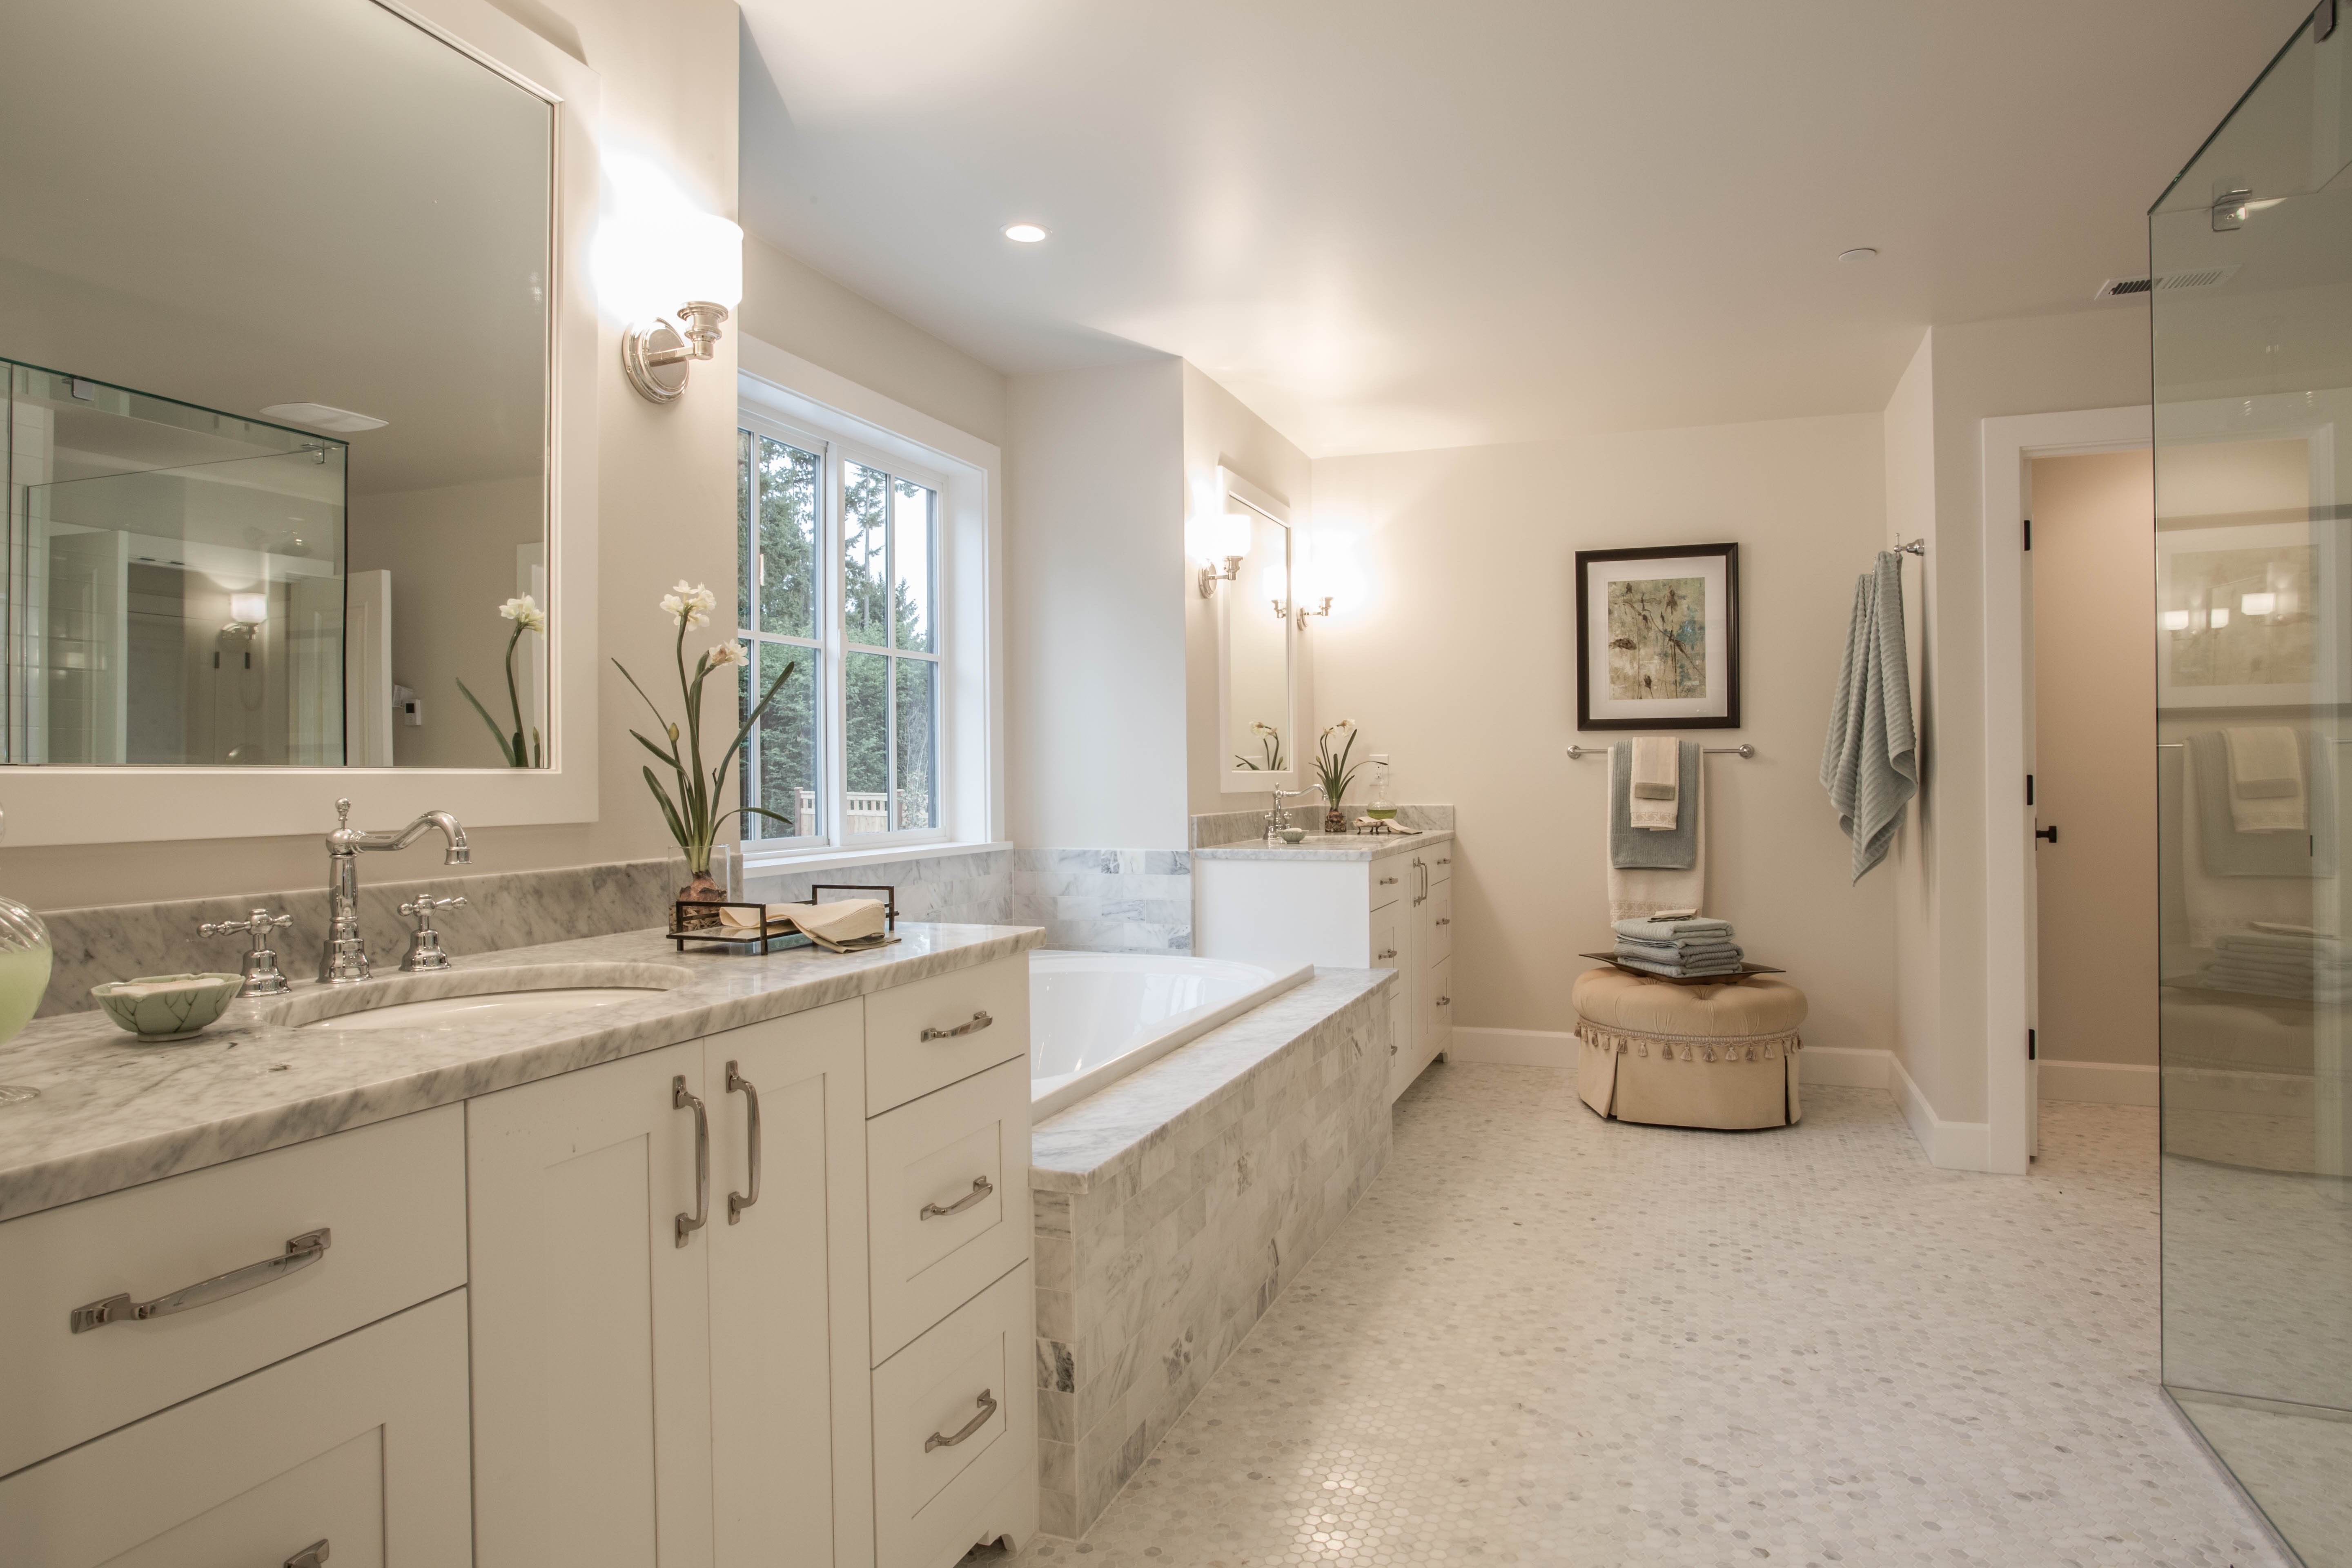 Bathroom remodel kirkland - What You Need To Know About Starting A Bathroom Remodel In Charlotte